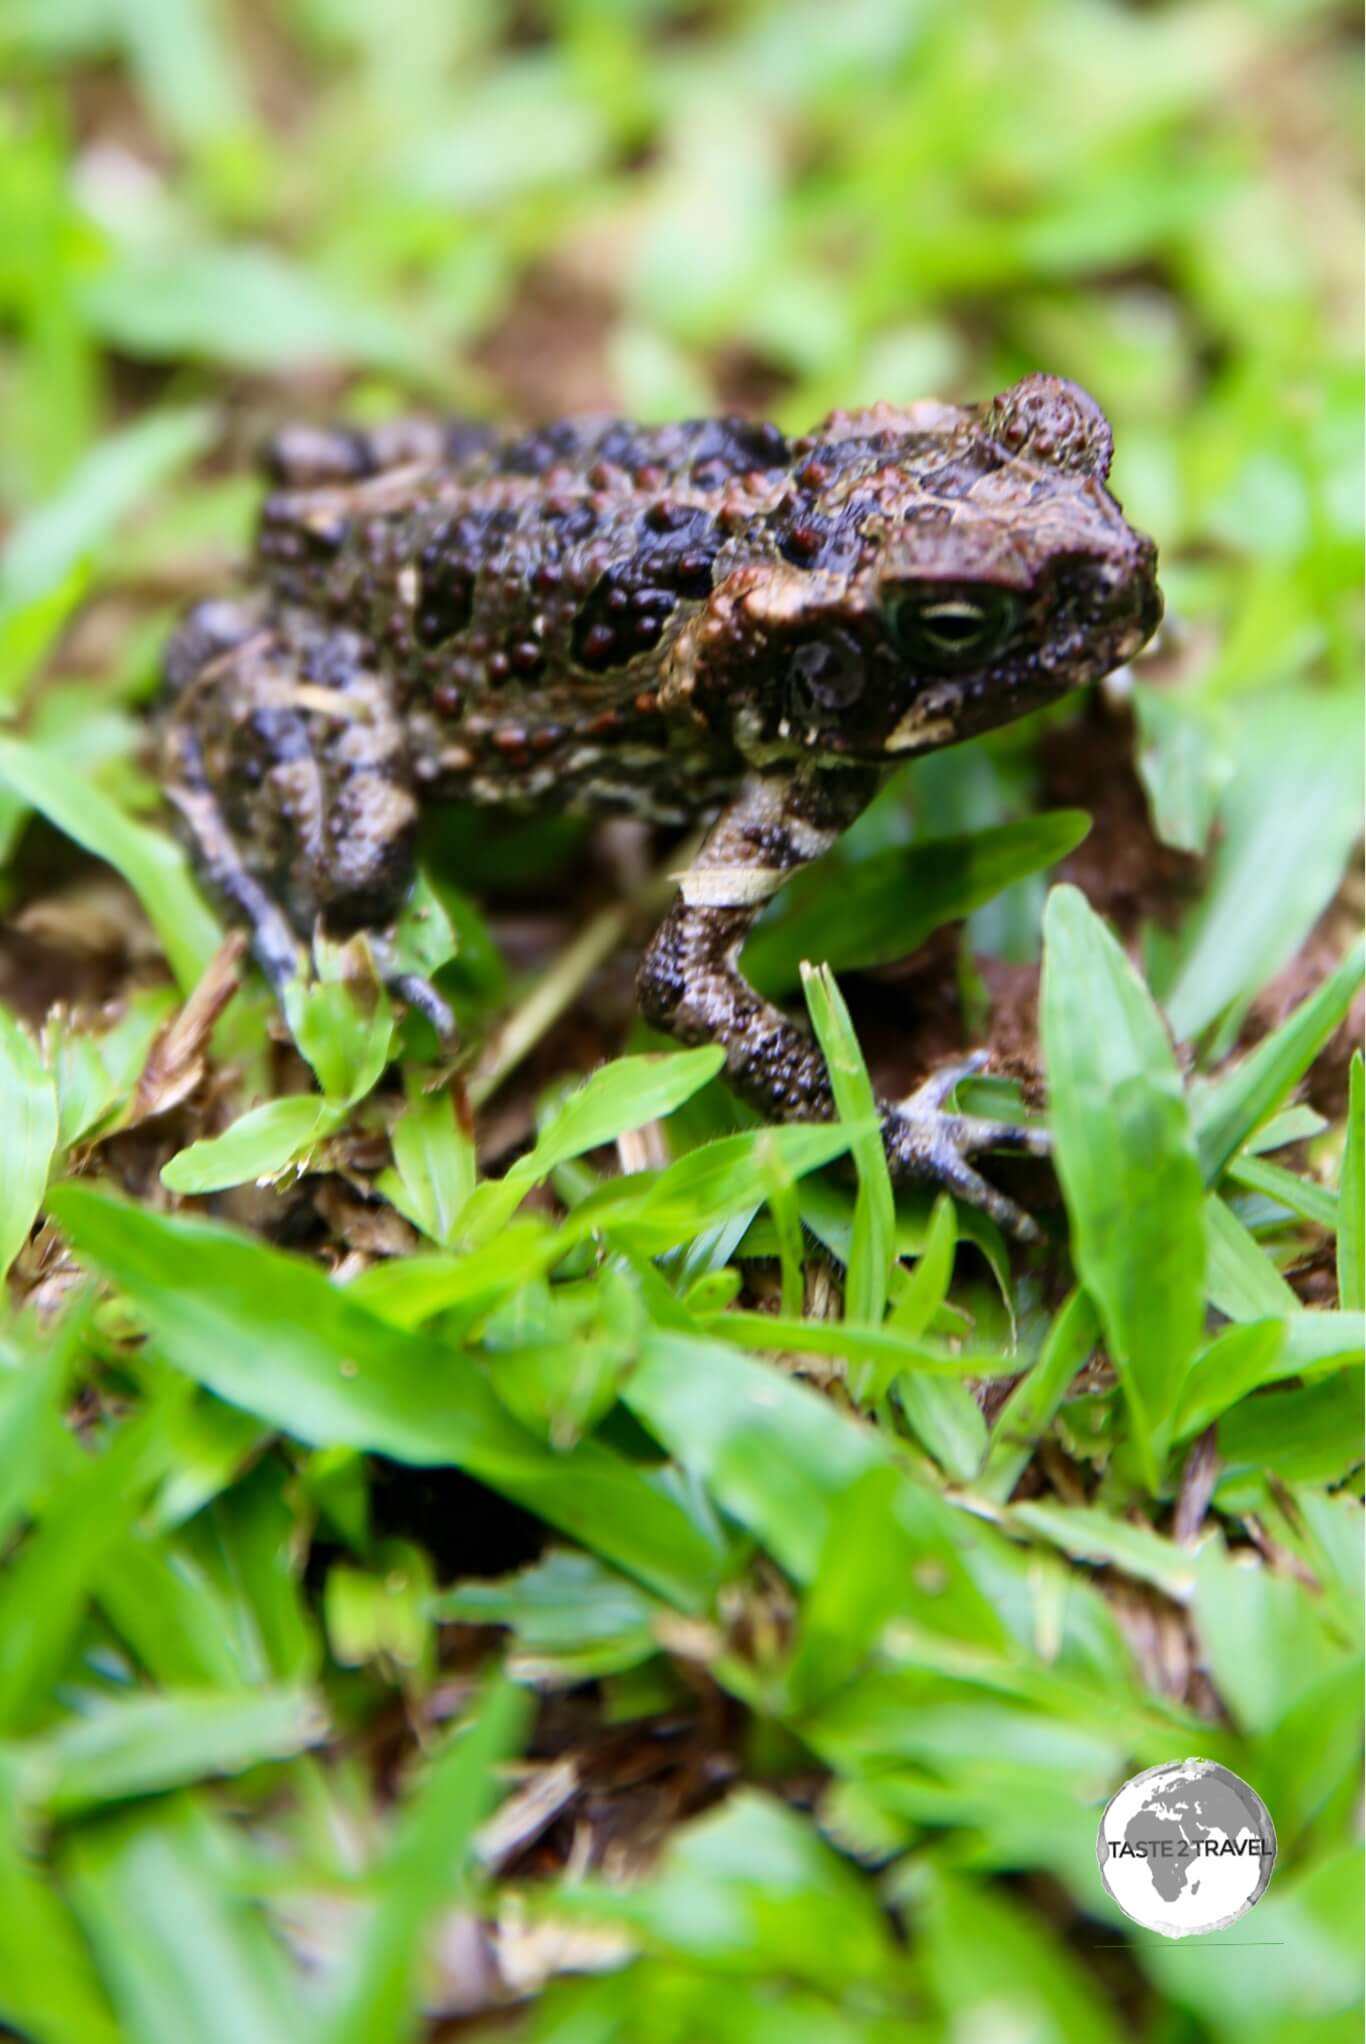 The Palau Ground Frog is endemic to Palau.